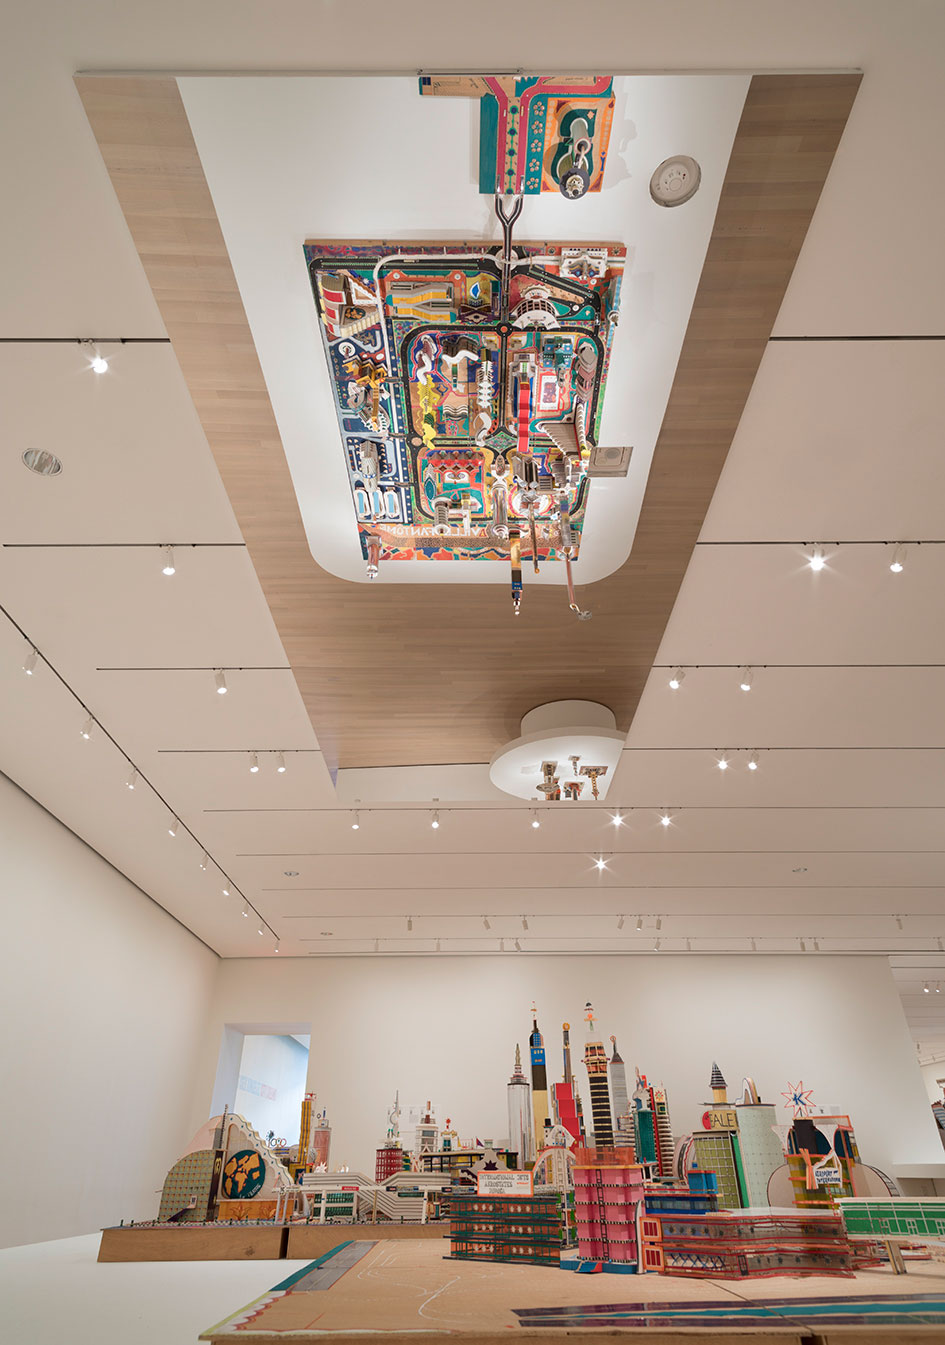 Installation view of Bodys Isek Kingelez: City Dreams, The Museum of Modern Art, New York, May 26, 2018–January 1, 2019. © 2018 The Museum of Modern Art. Photo by Denis Doorly.